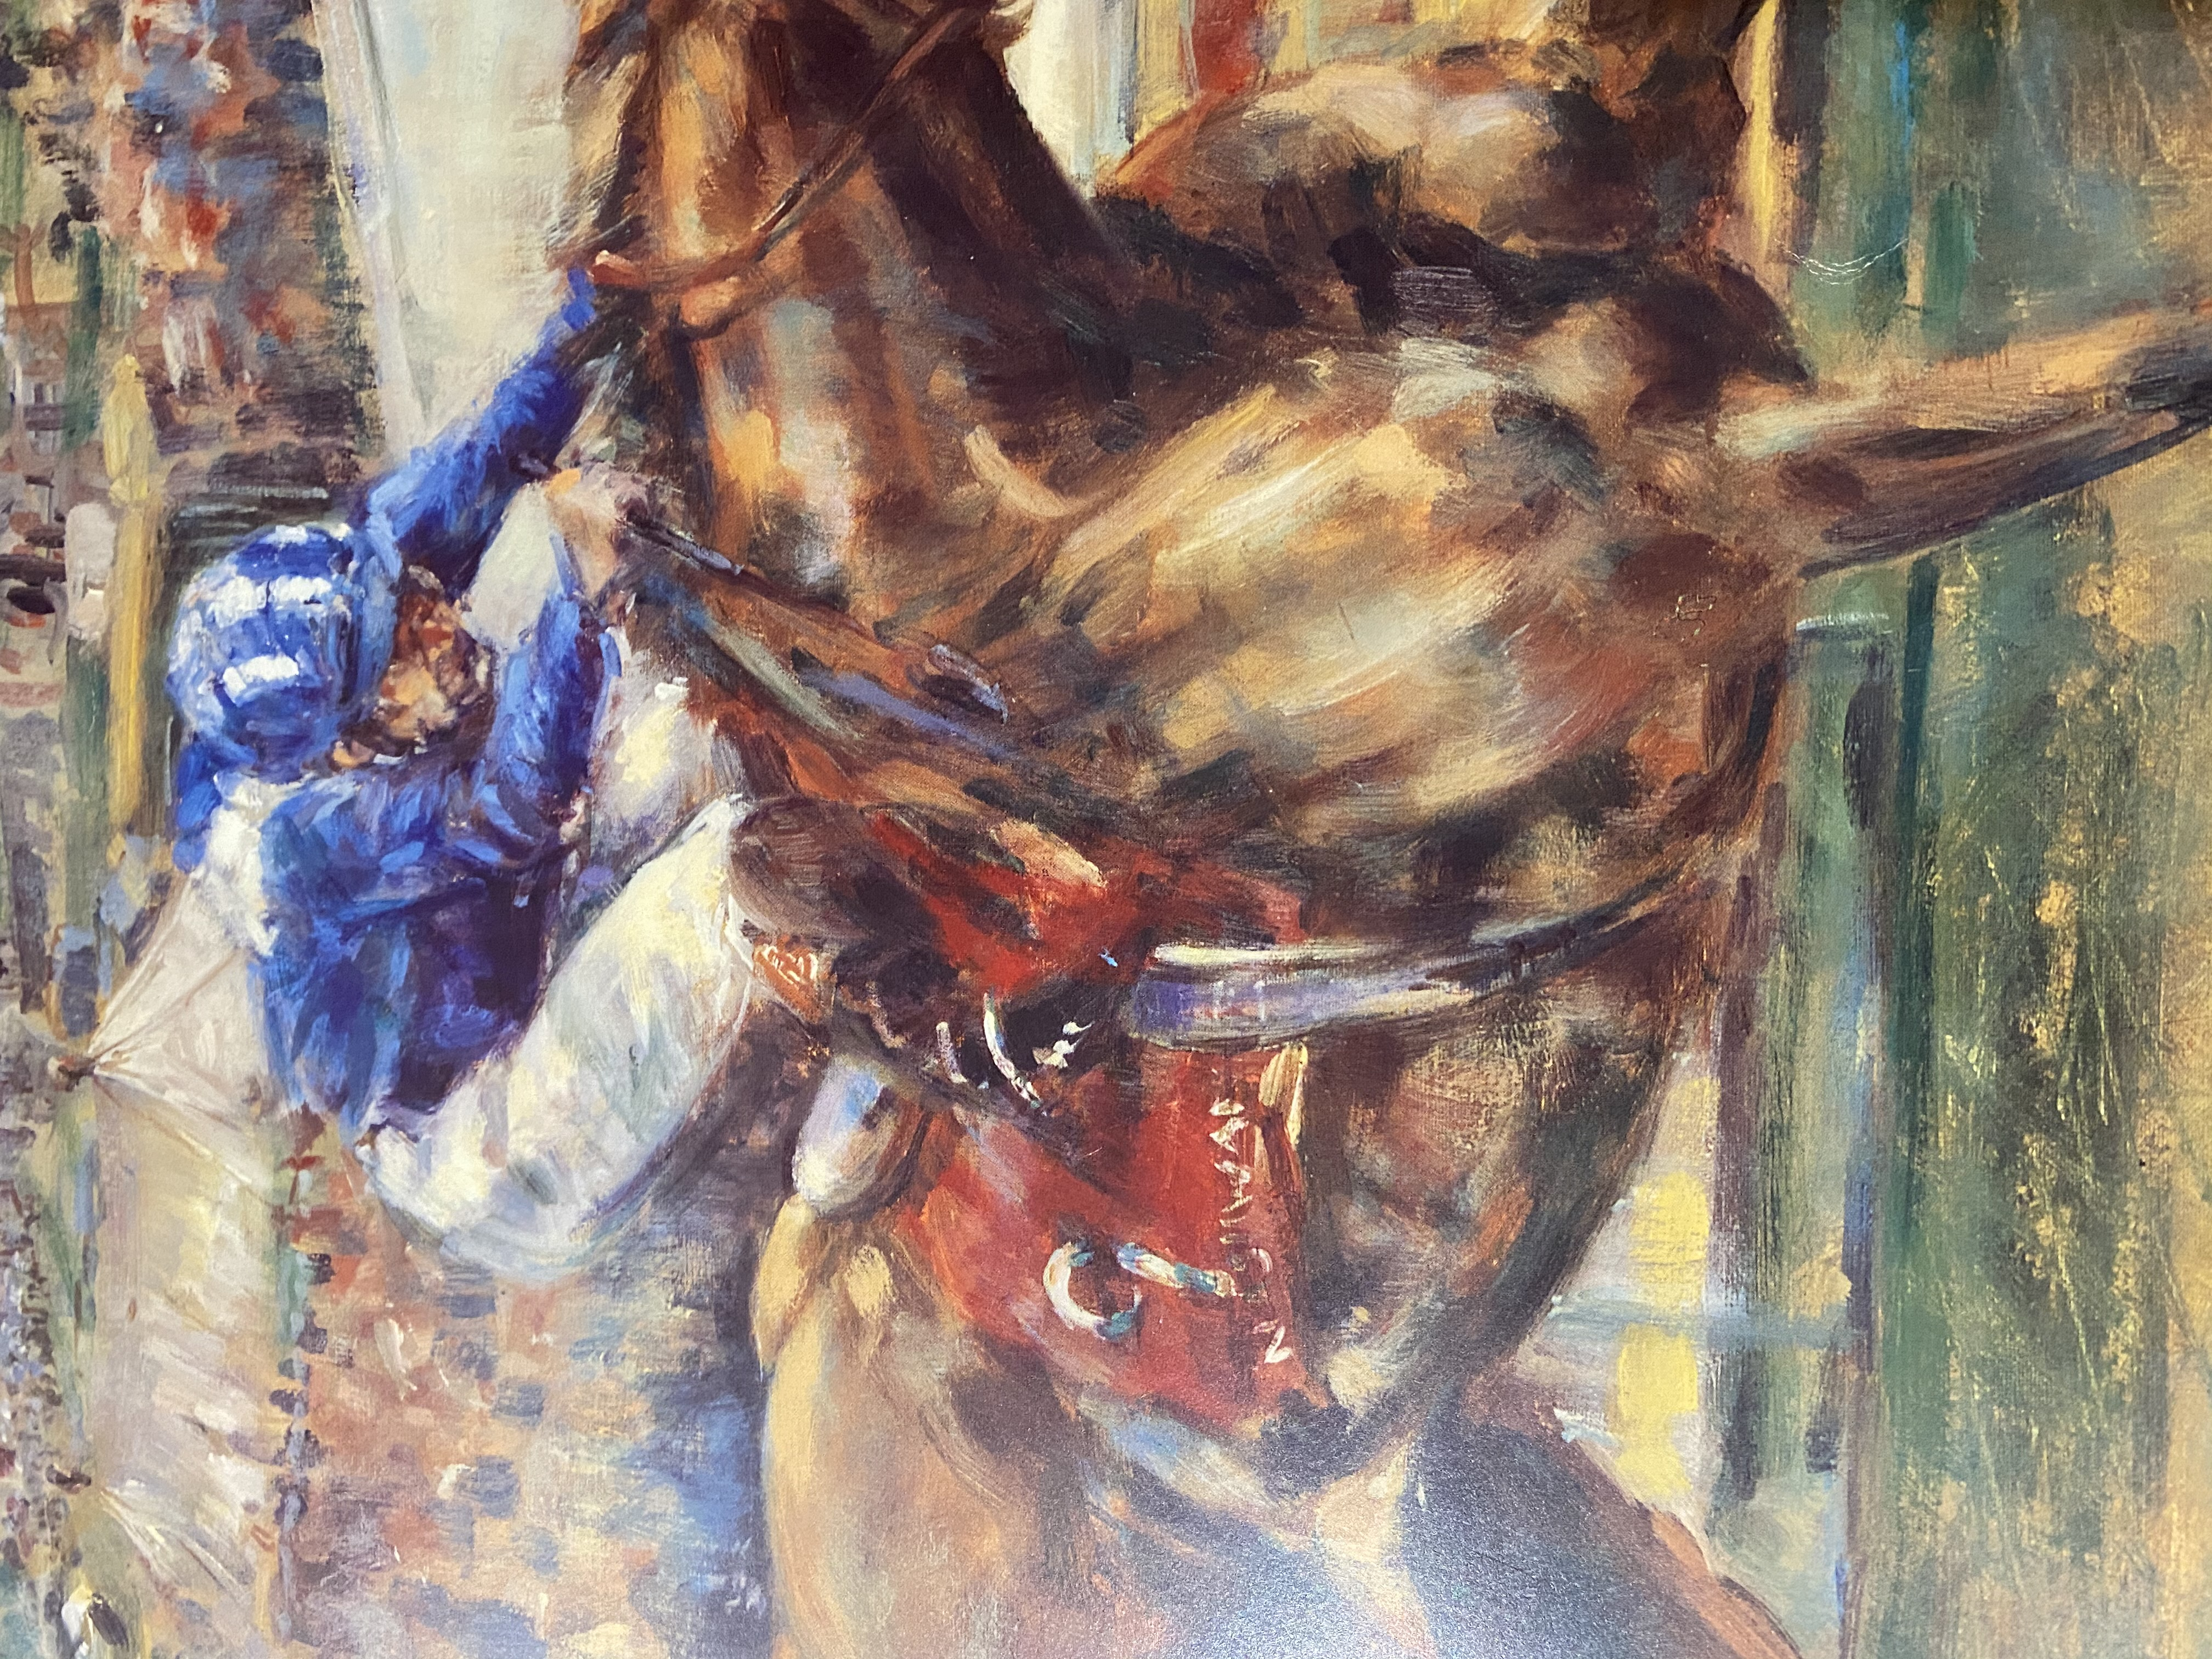 Claire Eva burton & Willie Carson Signed Limited Edition Print of Nashwan - Image 10 of 11